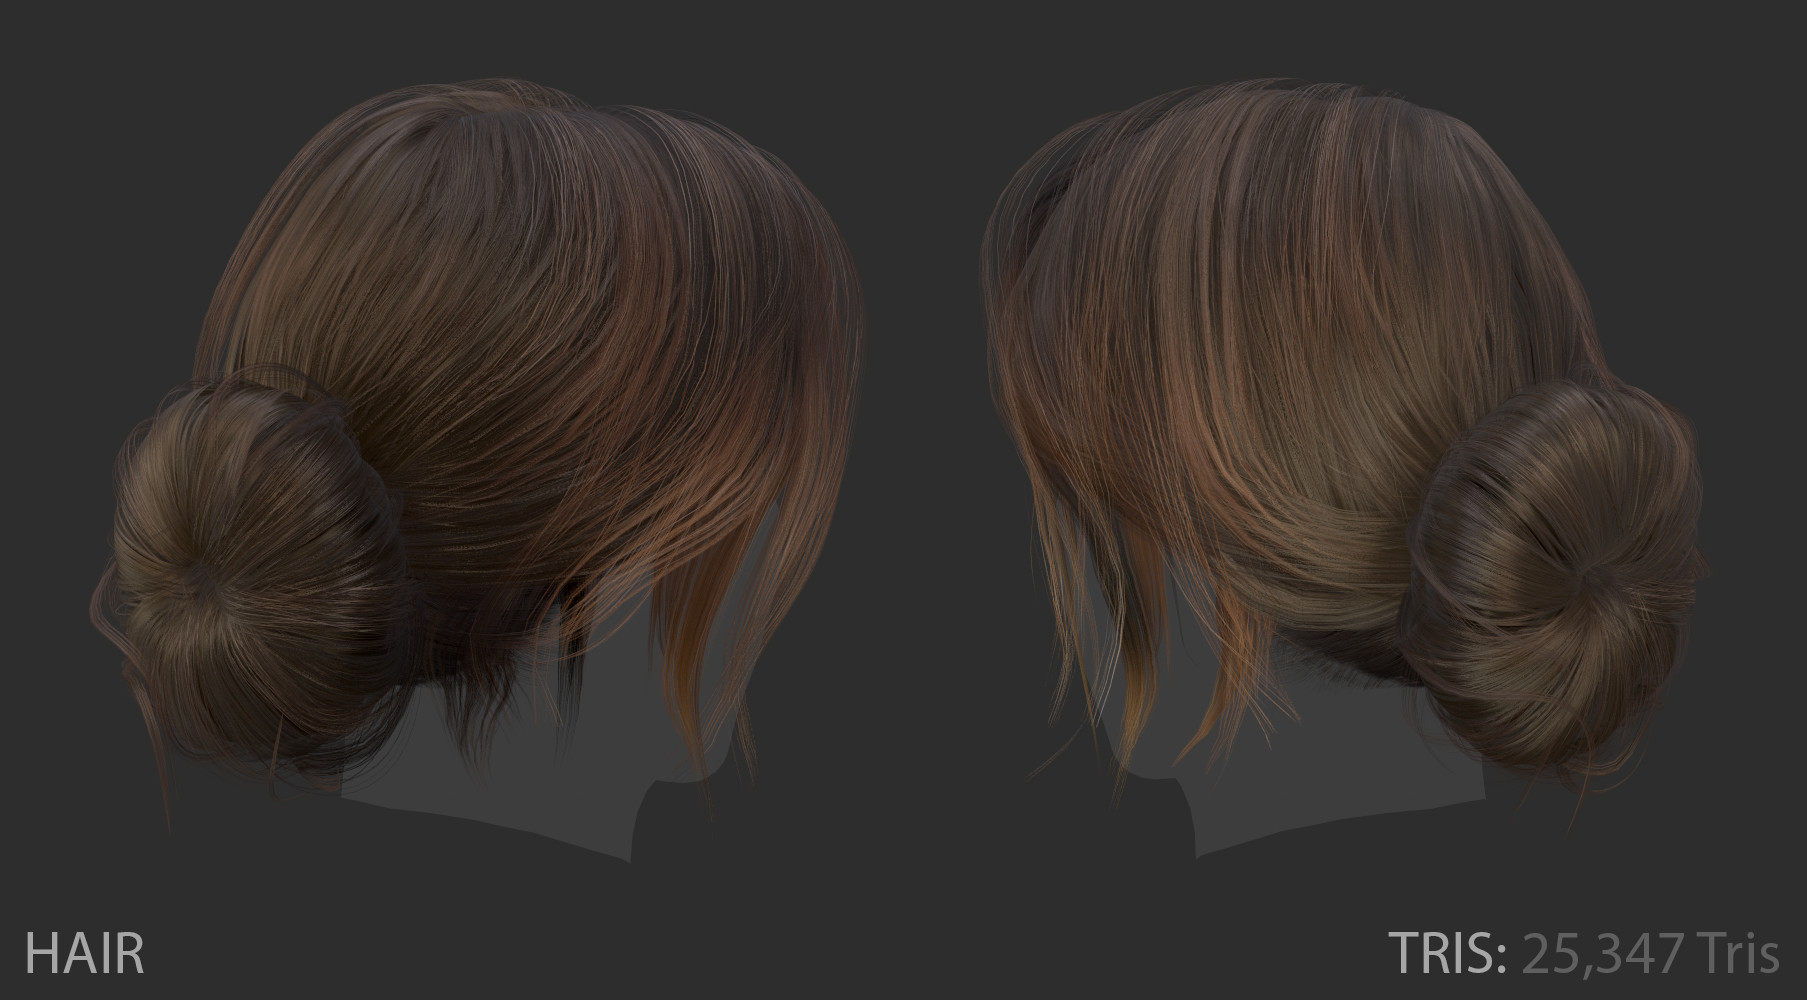 Paul foster hair render02